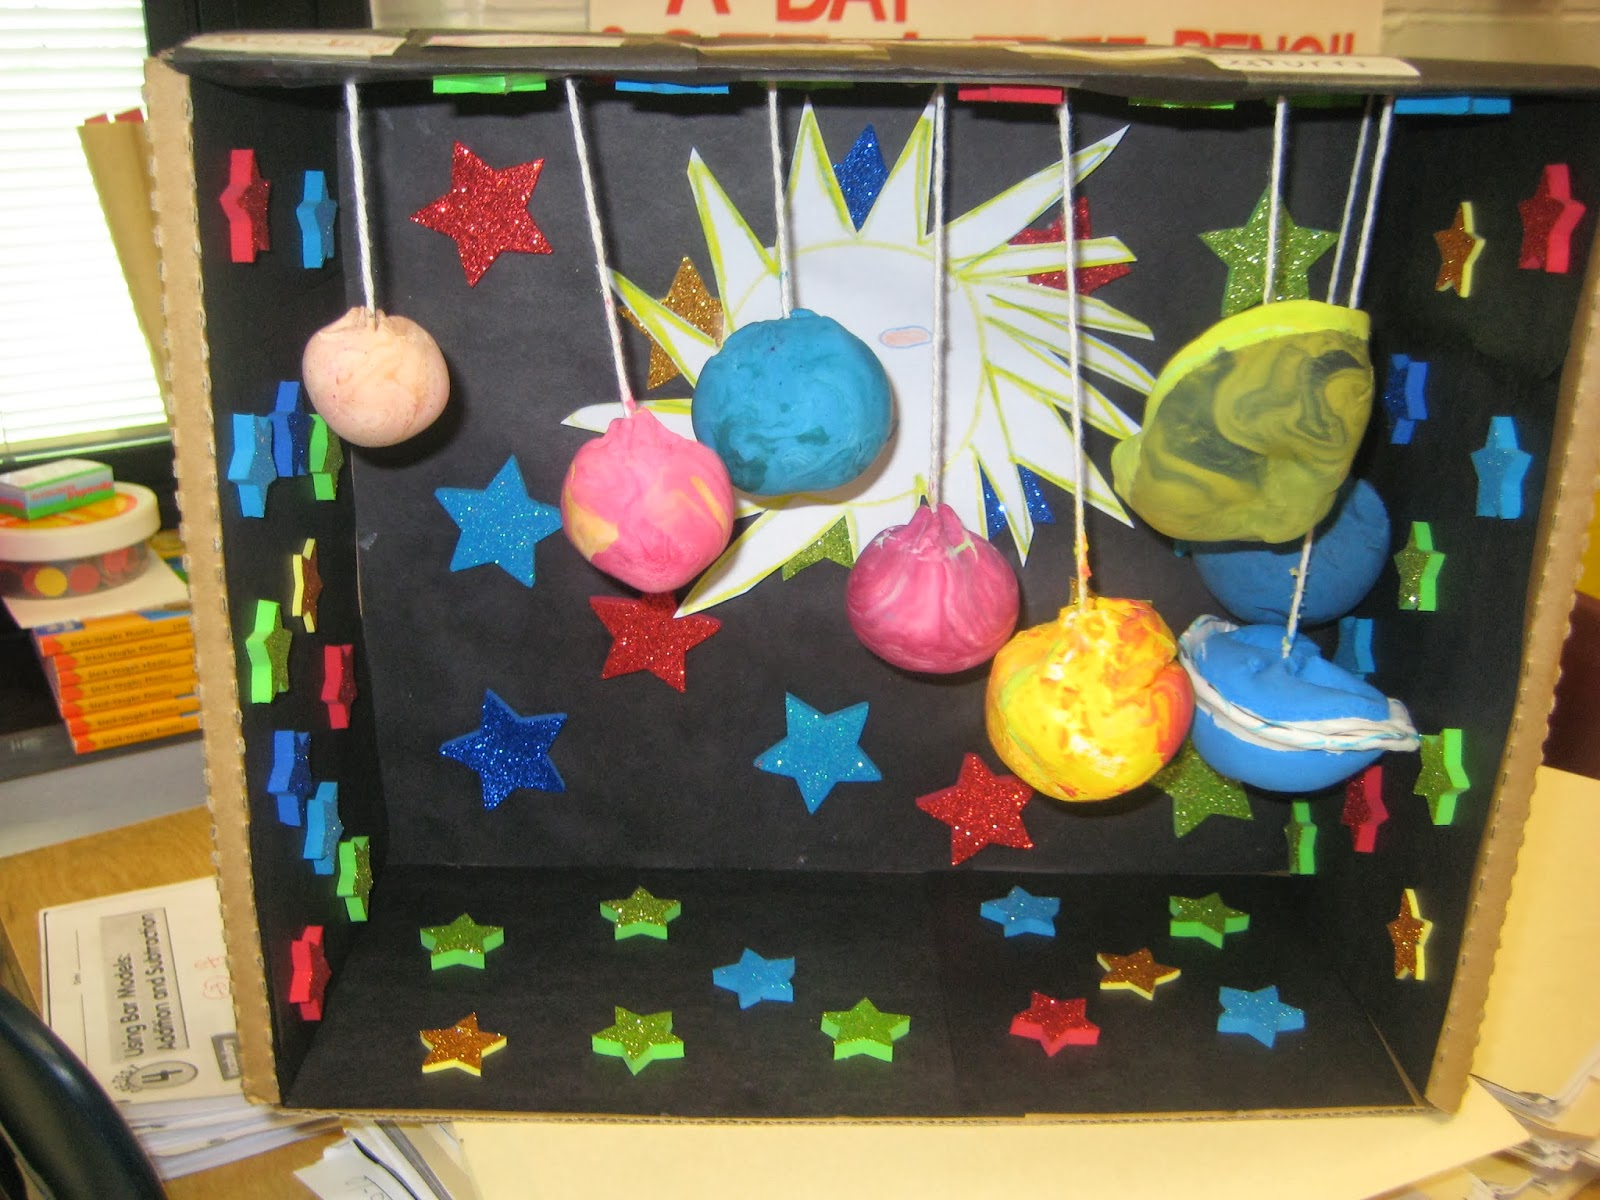 solar system project ideas - photo #38